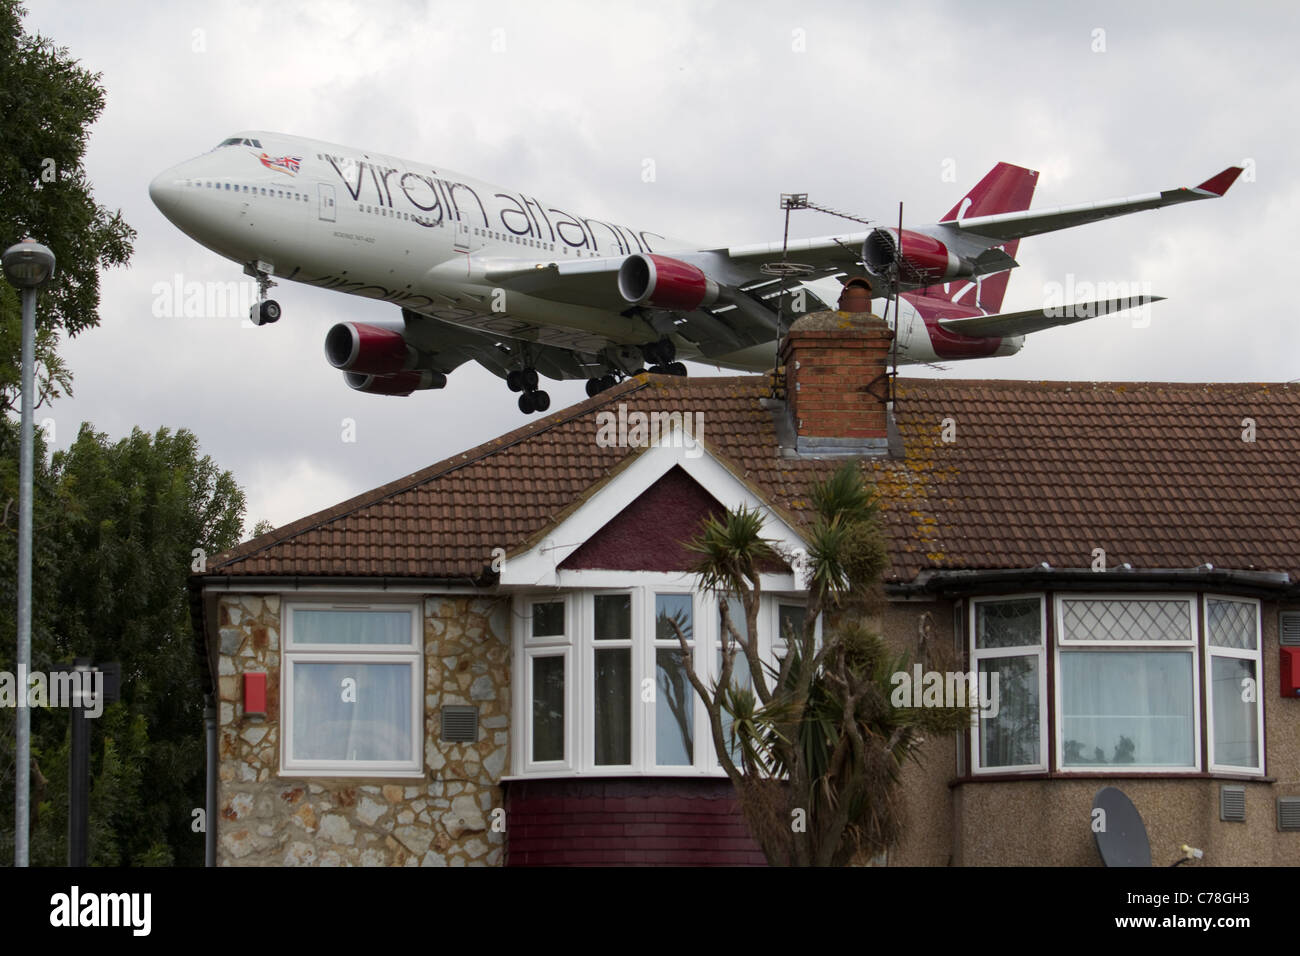 Low flying aircraft Heathrow airport approach Virgin atlantic, noise pollution with residential housing - Stock Image